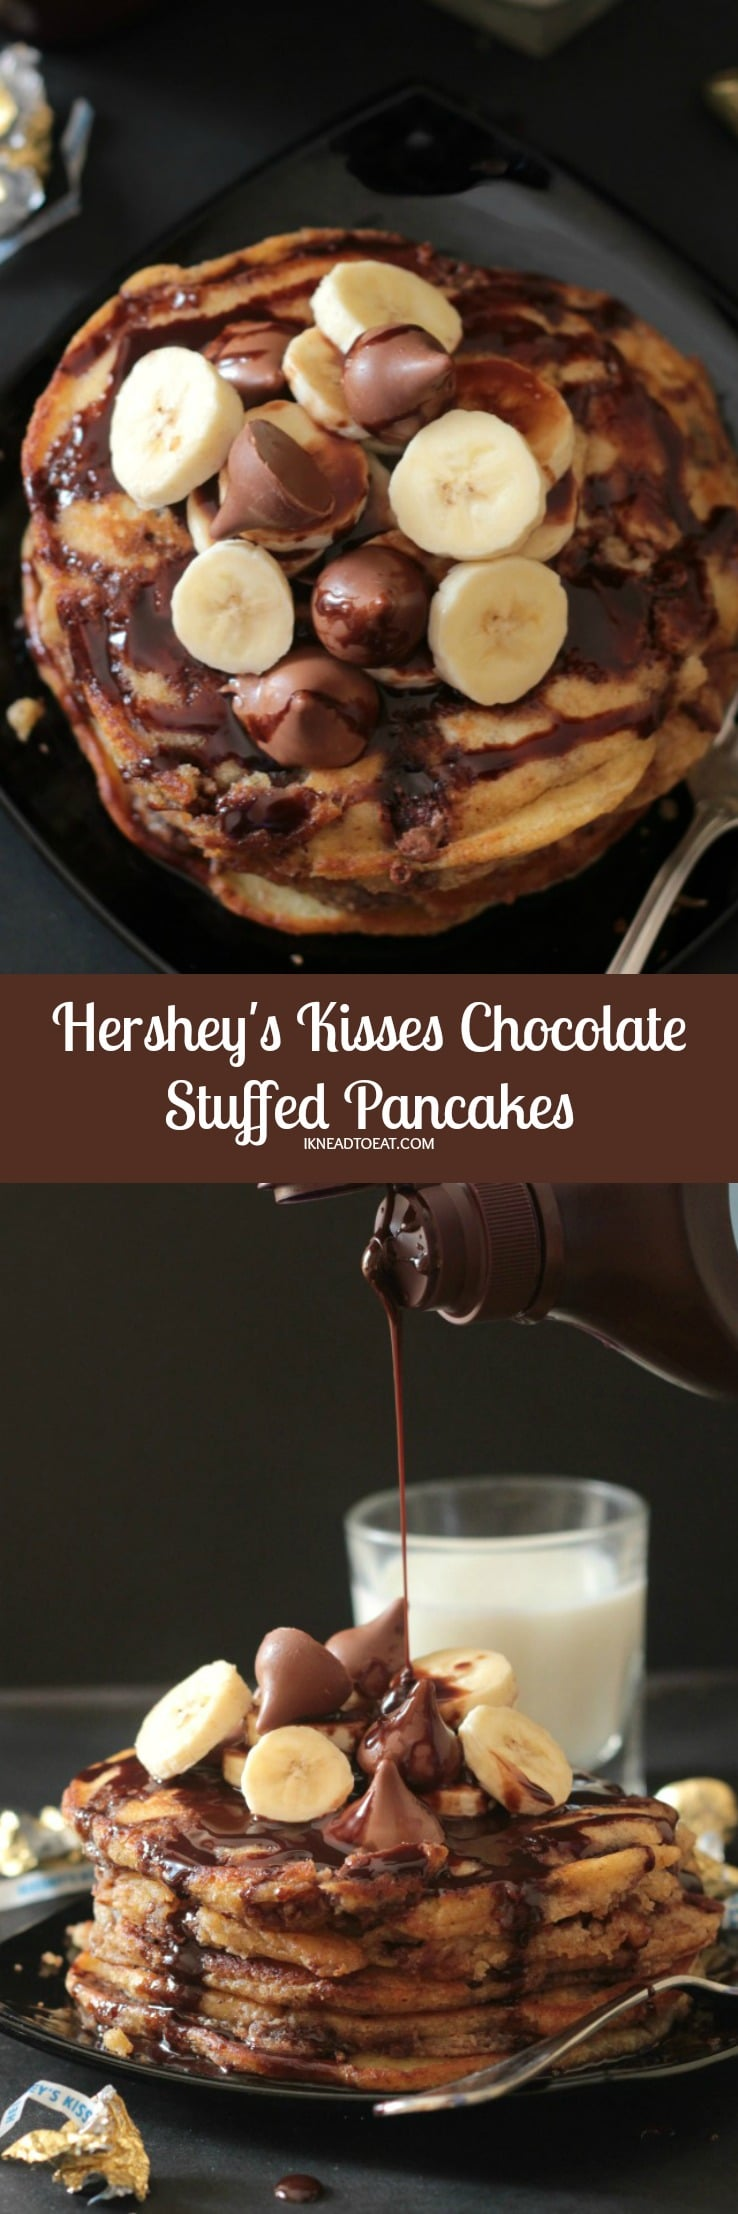 Hershey's Kisses Chocolate Stuffed Pancakes